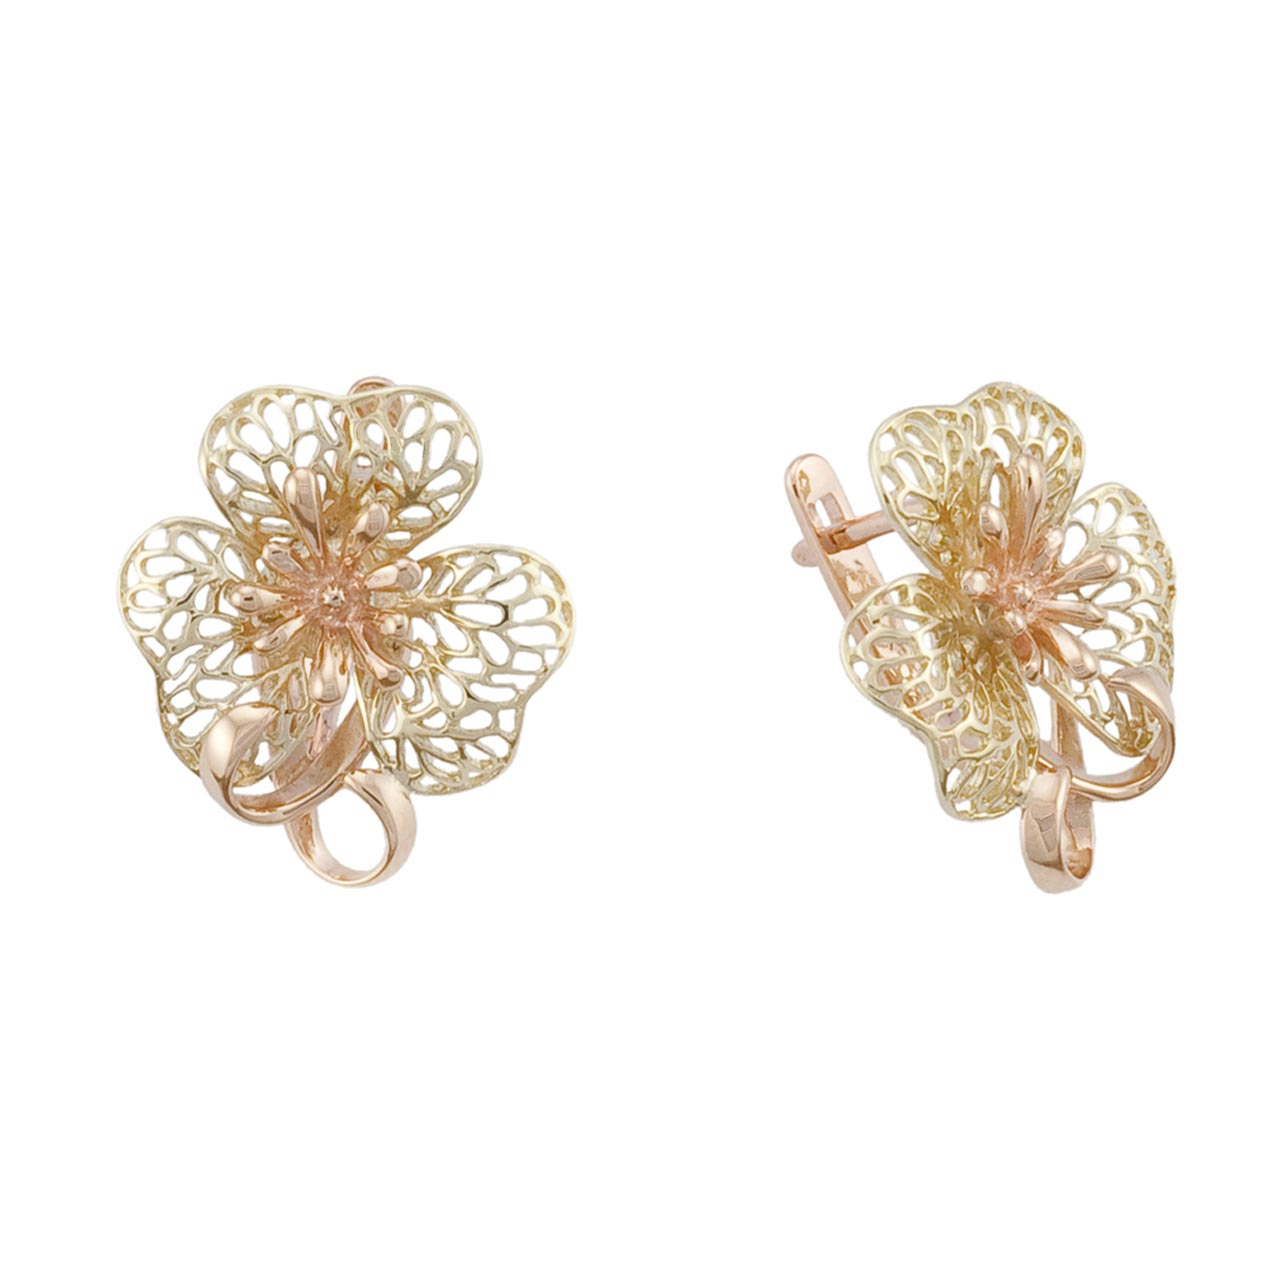 Green and pink gold earrings 1